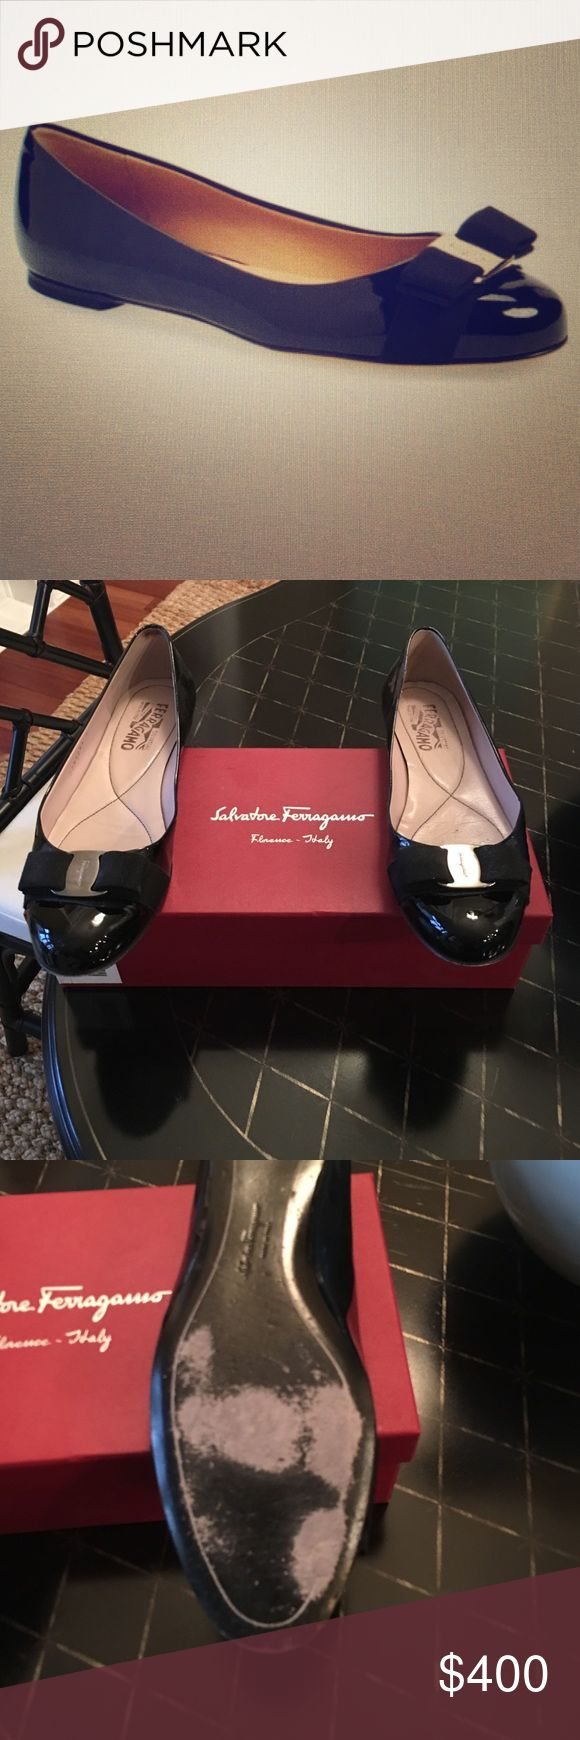 Salvatore Ferragamo flats for sale Ferragamo Varuna leather flats for sale, absolutely no damage to top leather. Slight wear on bottom of shoes. Black patent silver logo-embossed metal buckle and grosgrain bow. Salvatore Ferragamo Shoes